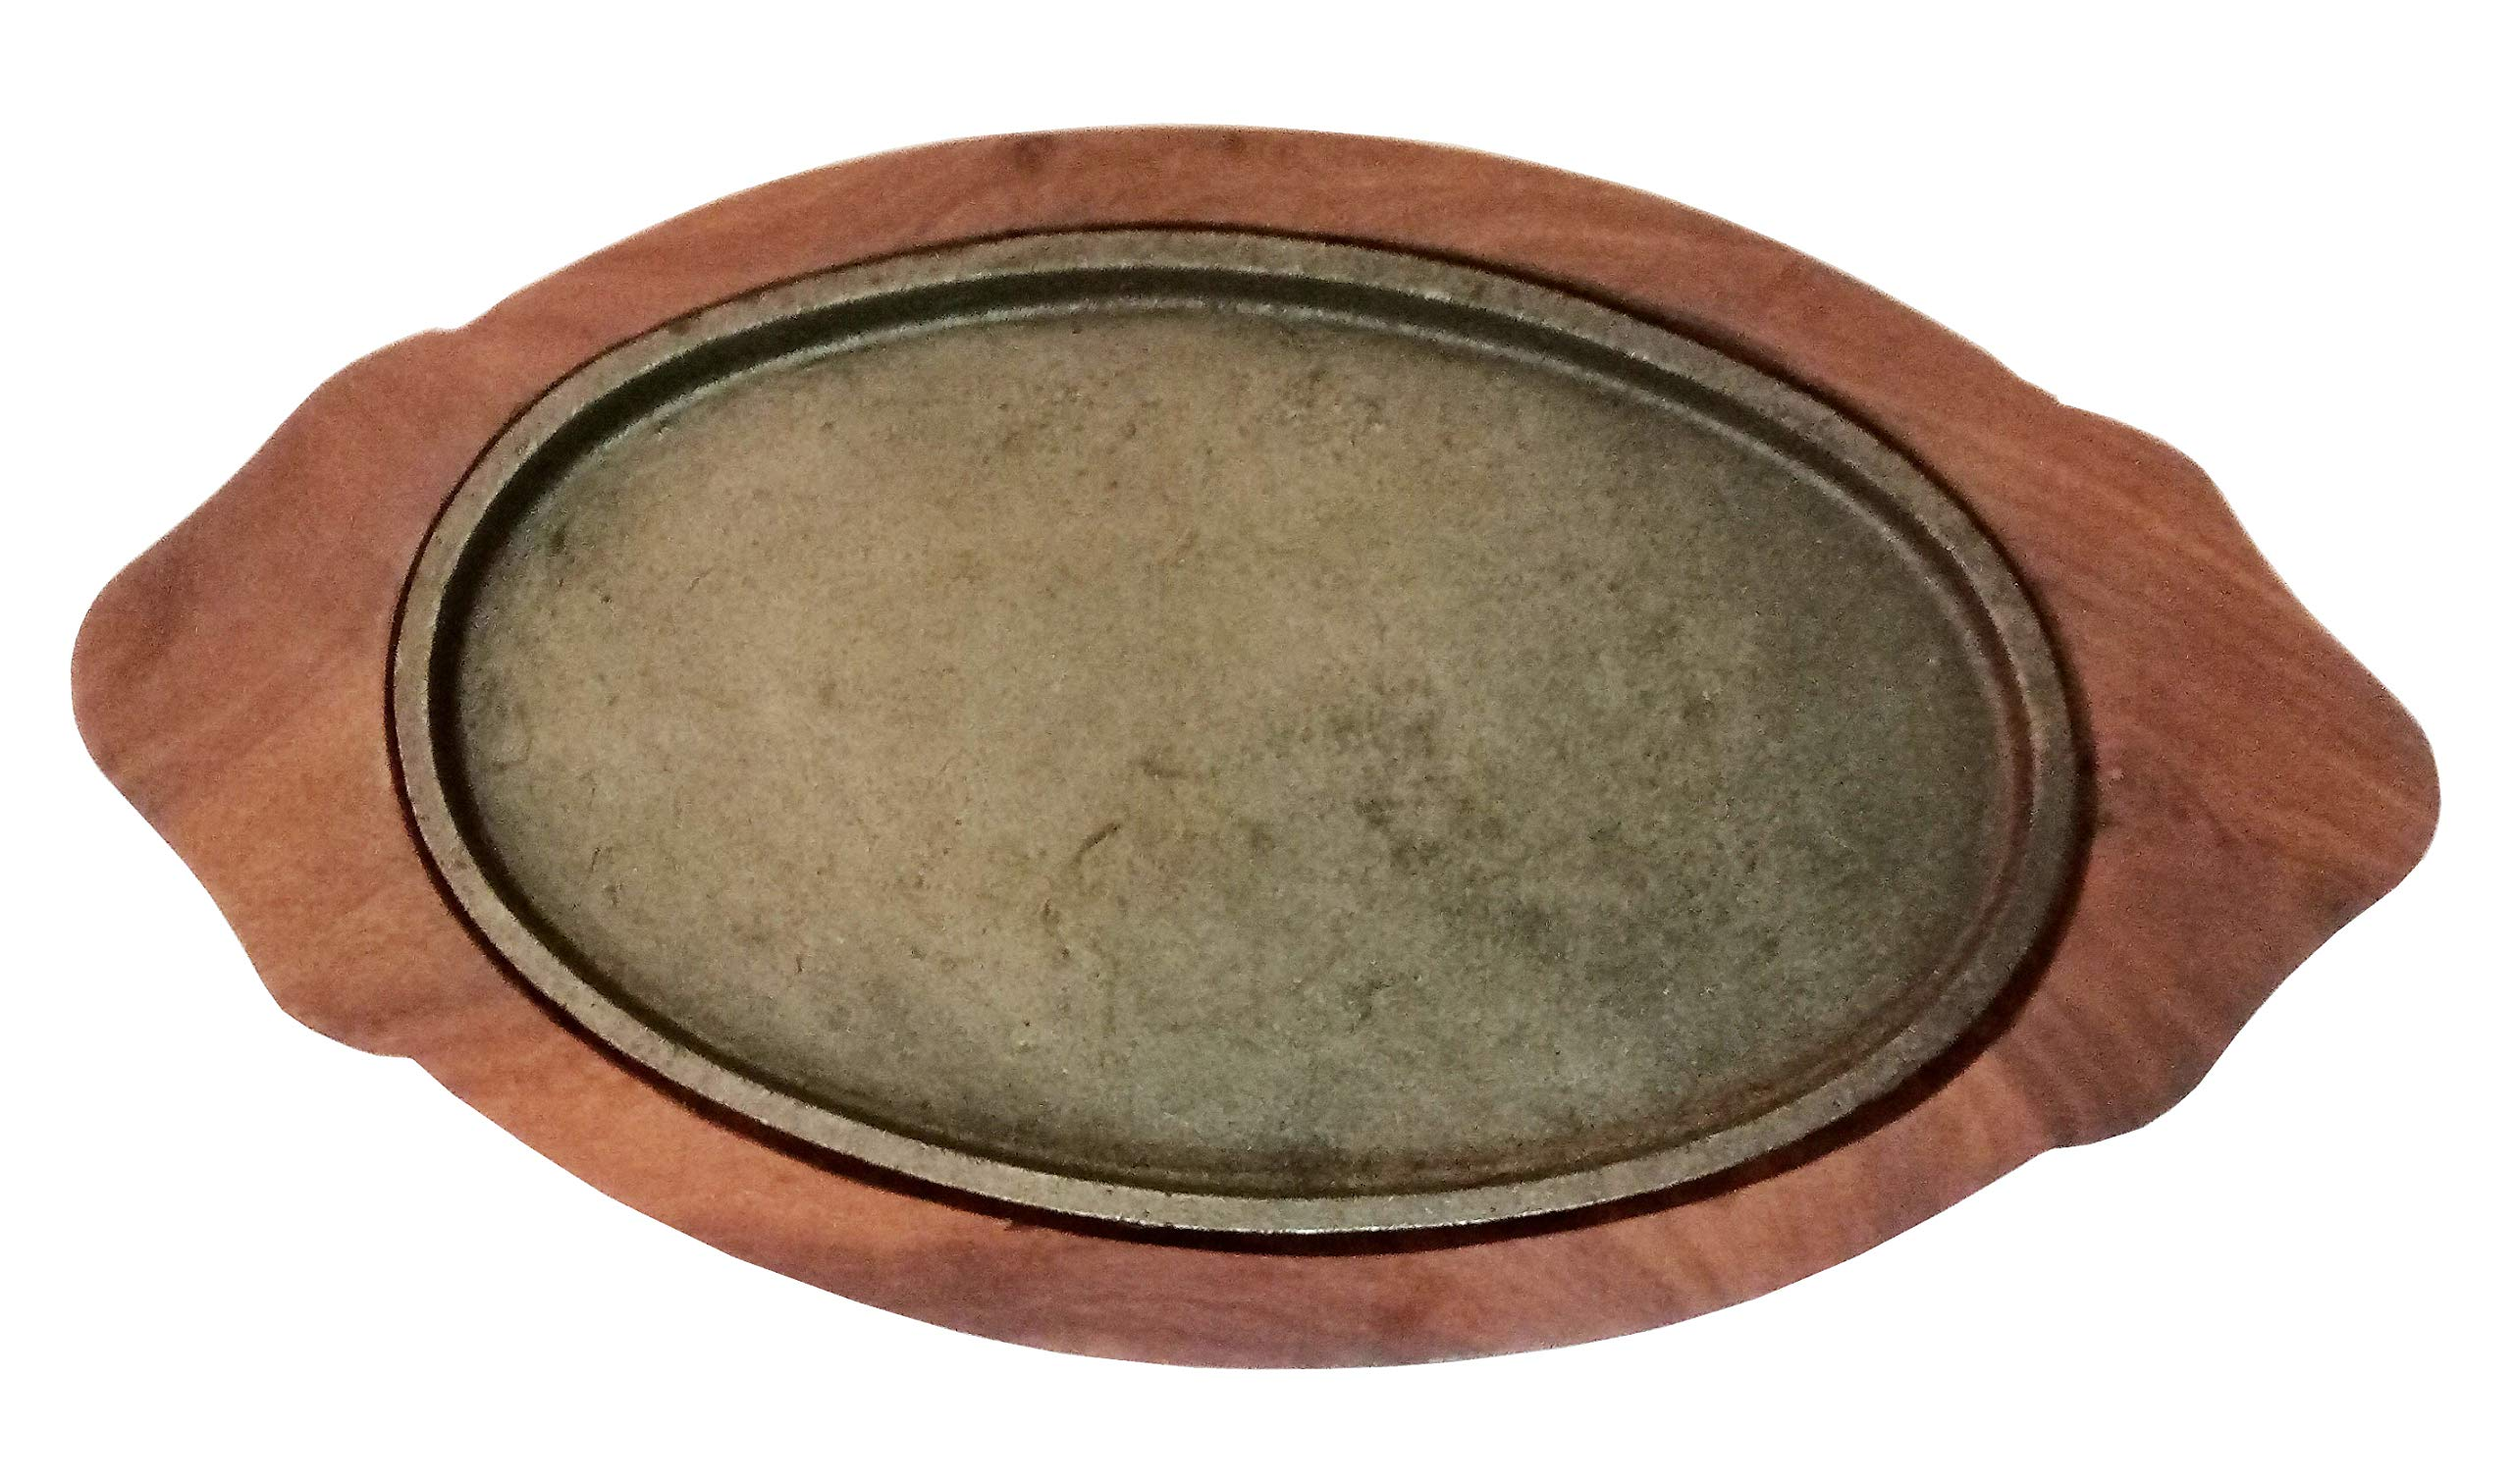 Sahishnu Online And Marketing Fajita Pan with Wooden Tray, Sizzling Brownie Sizzler Plate/Tray with Wooden Base Oval